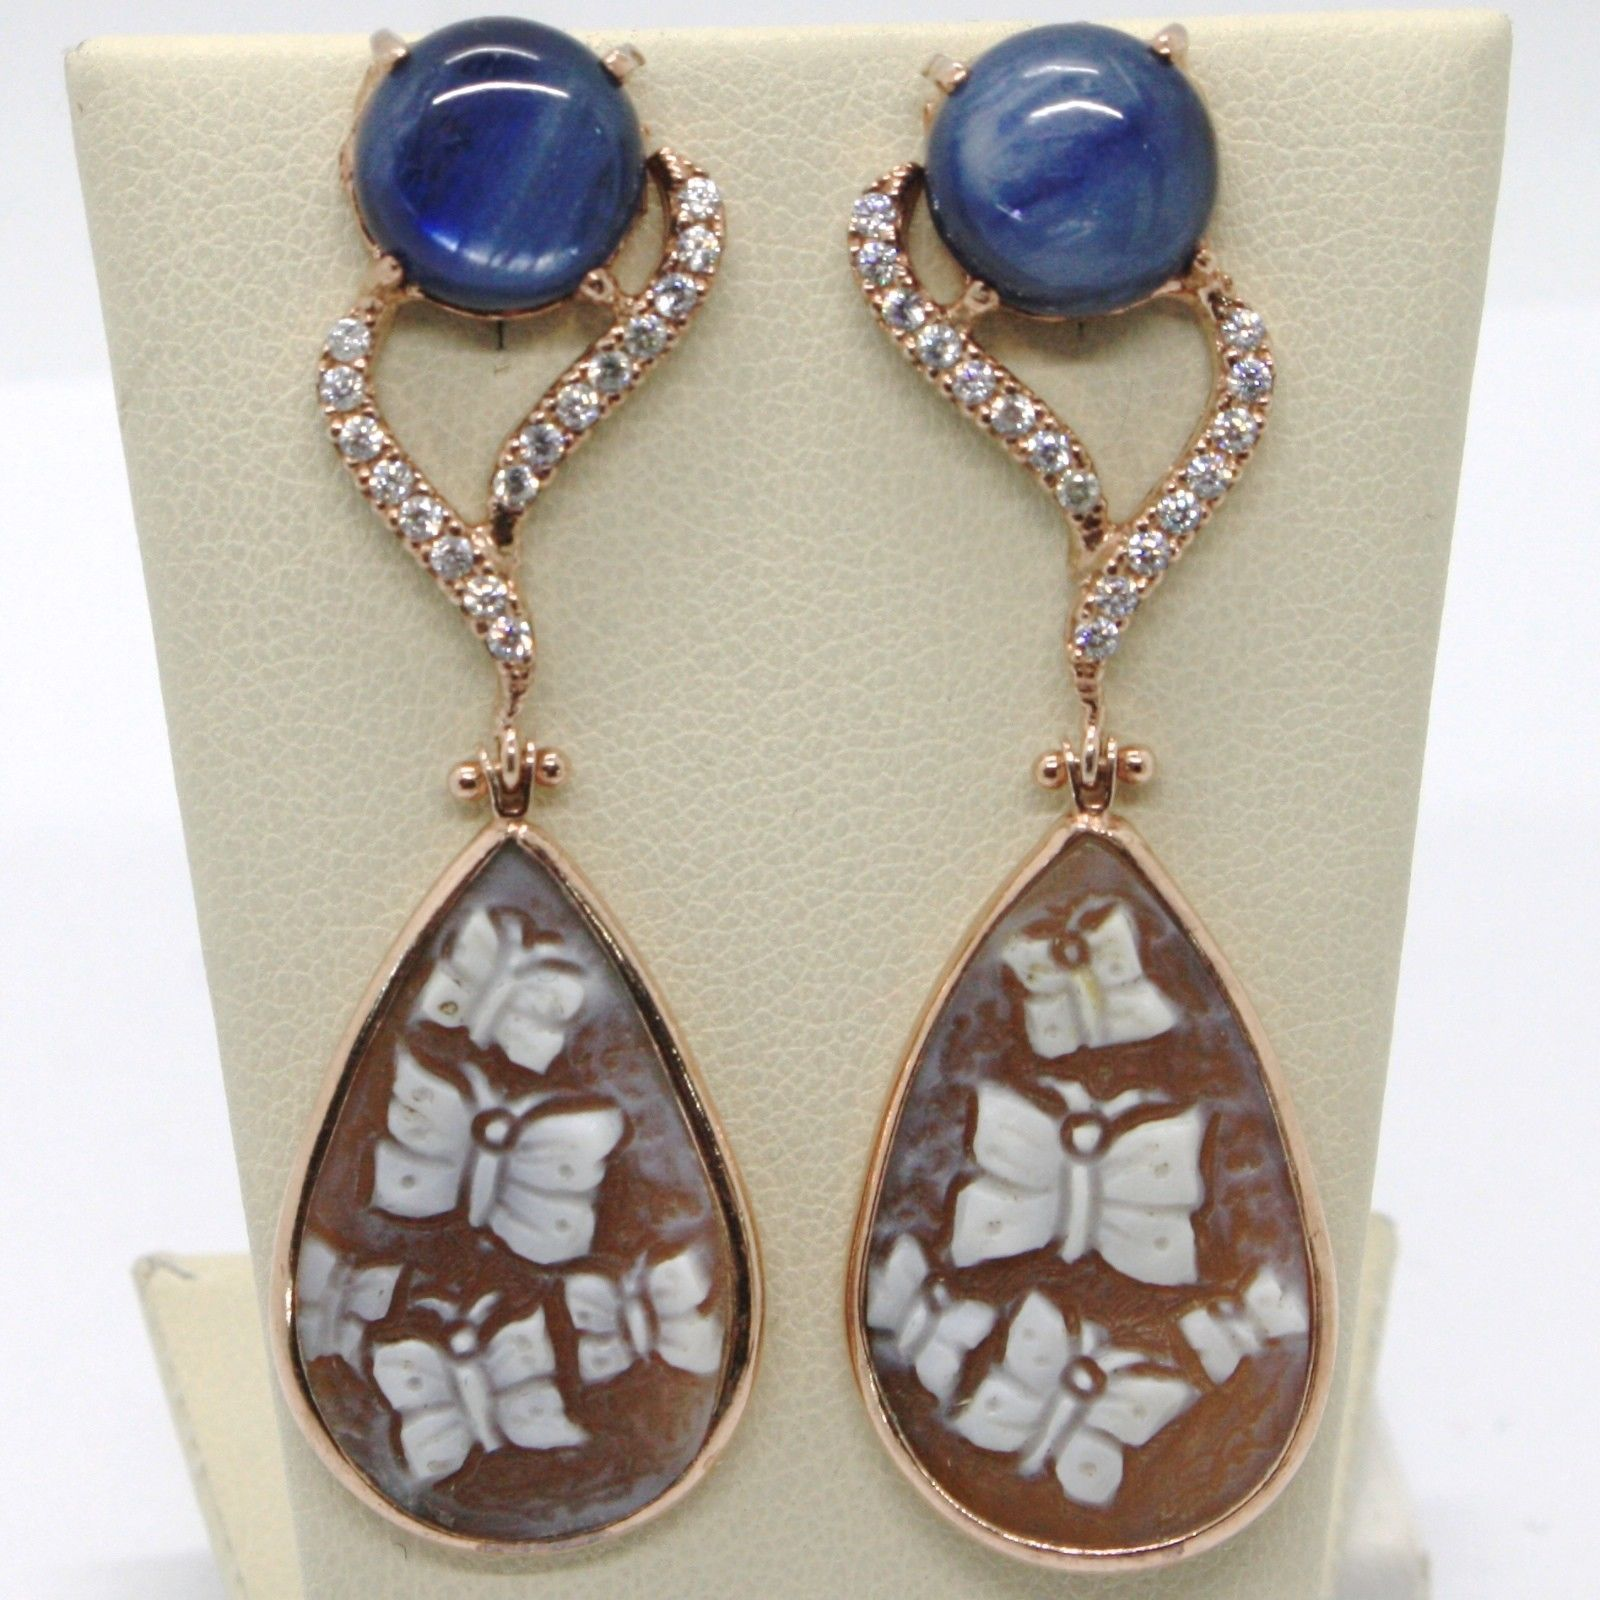 EARRINGS SILVER 925 CAMEO CAMEO WITH FLOWERS KYANITE AND ZIRCON MADE IN ITALY